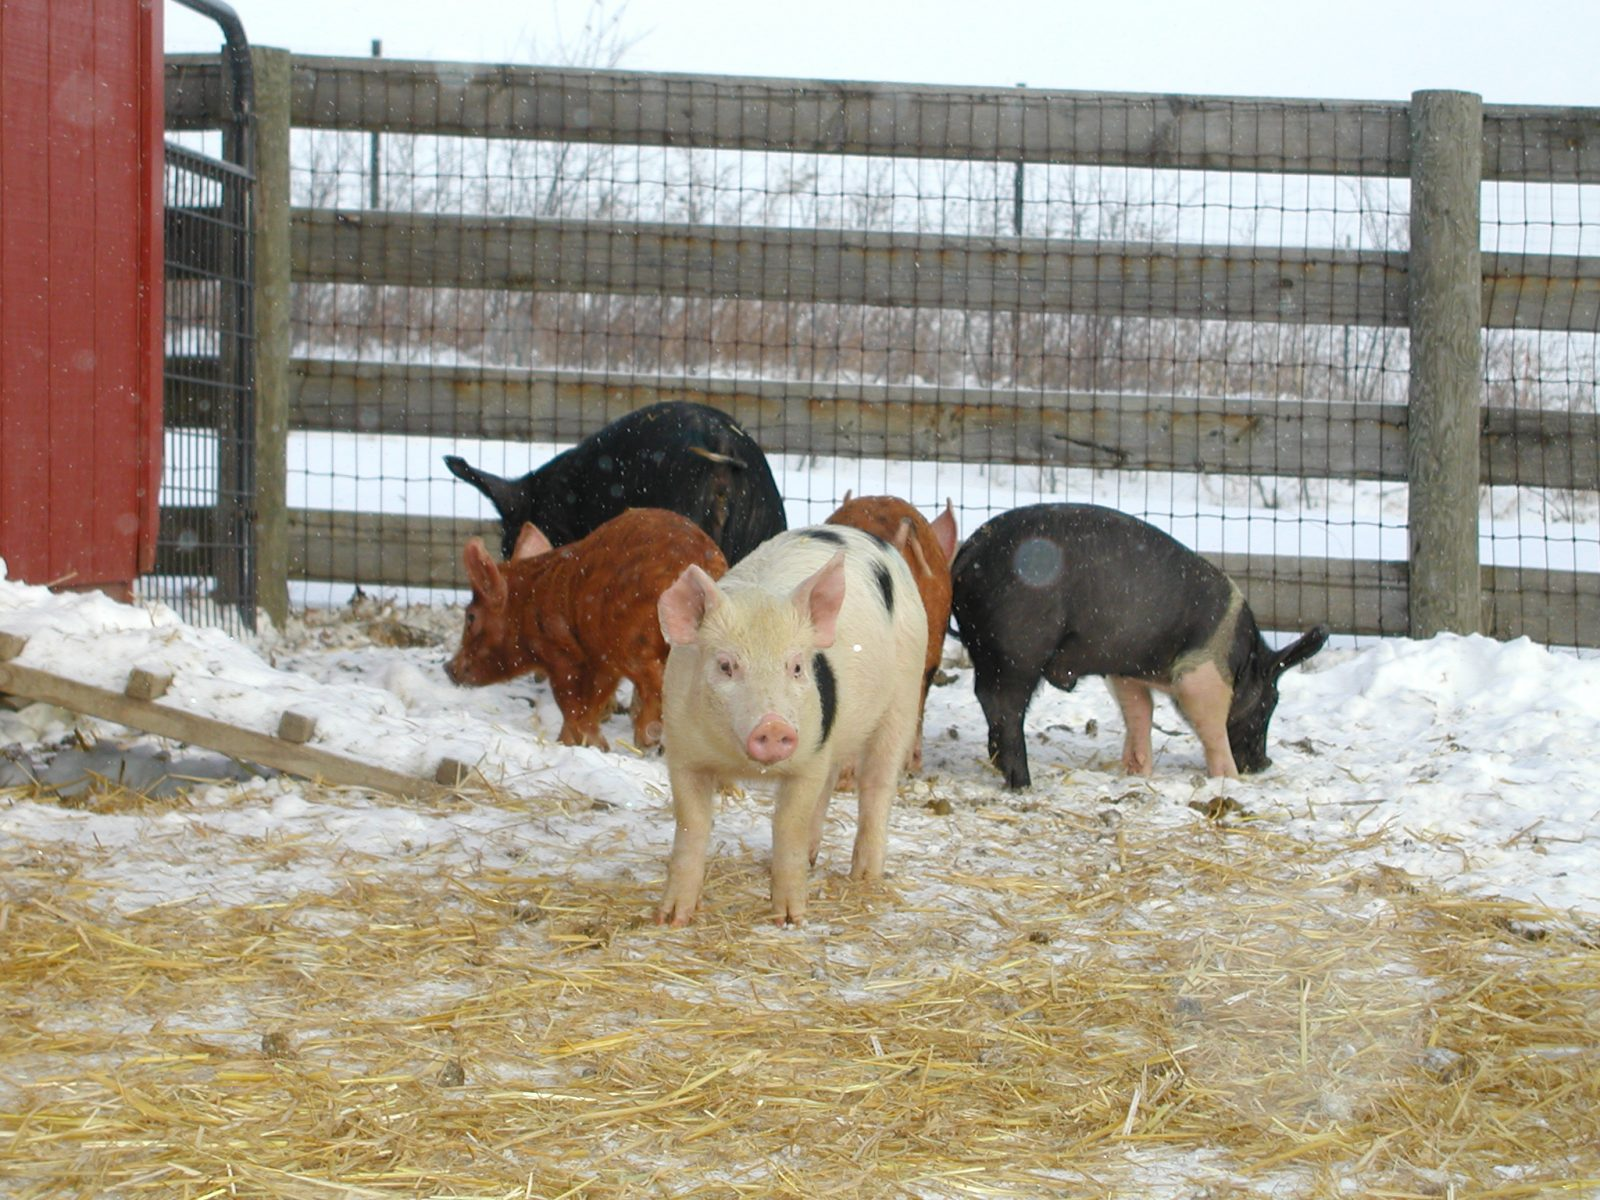 Pigs in the snow at Farm Sanctuary